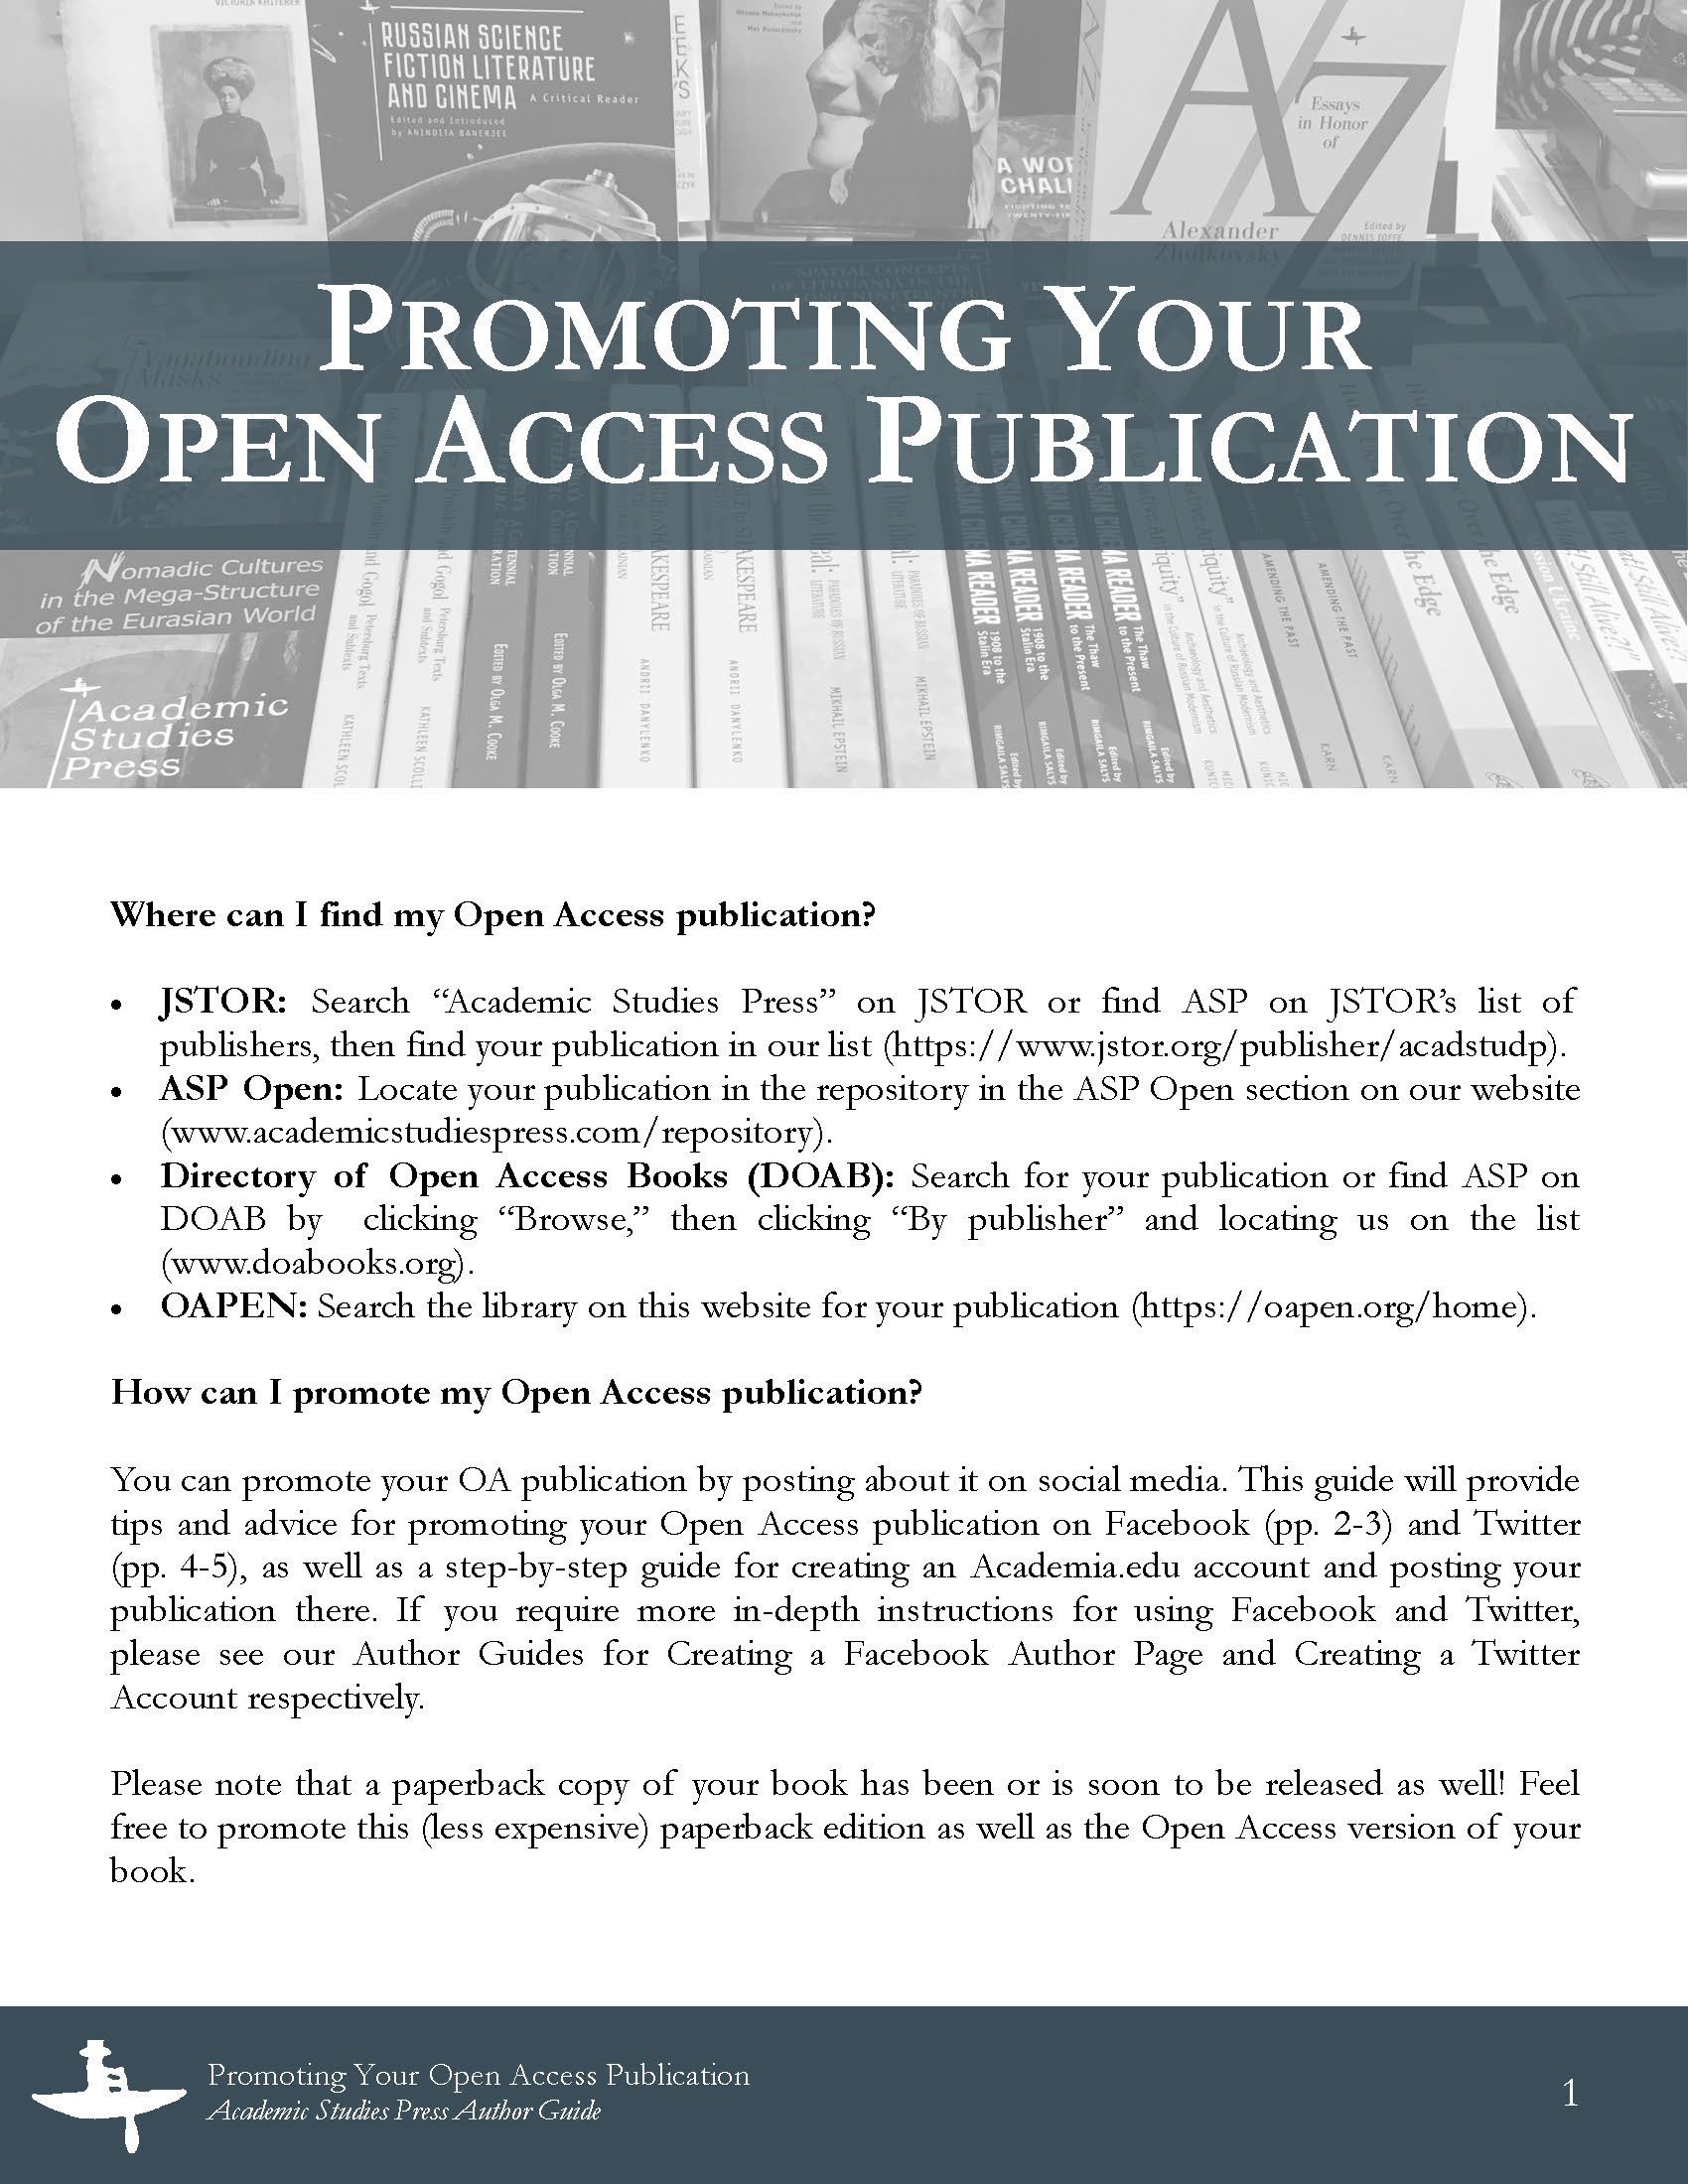 Author Guide: Promoting Your Open Access Publication